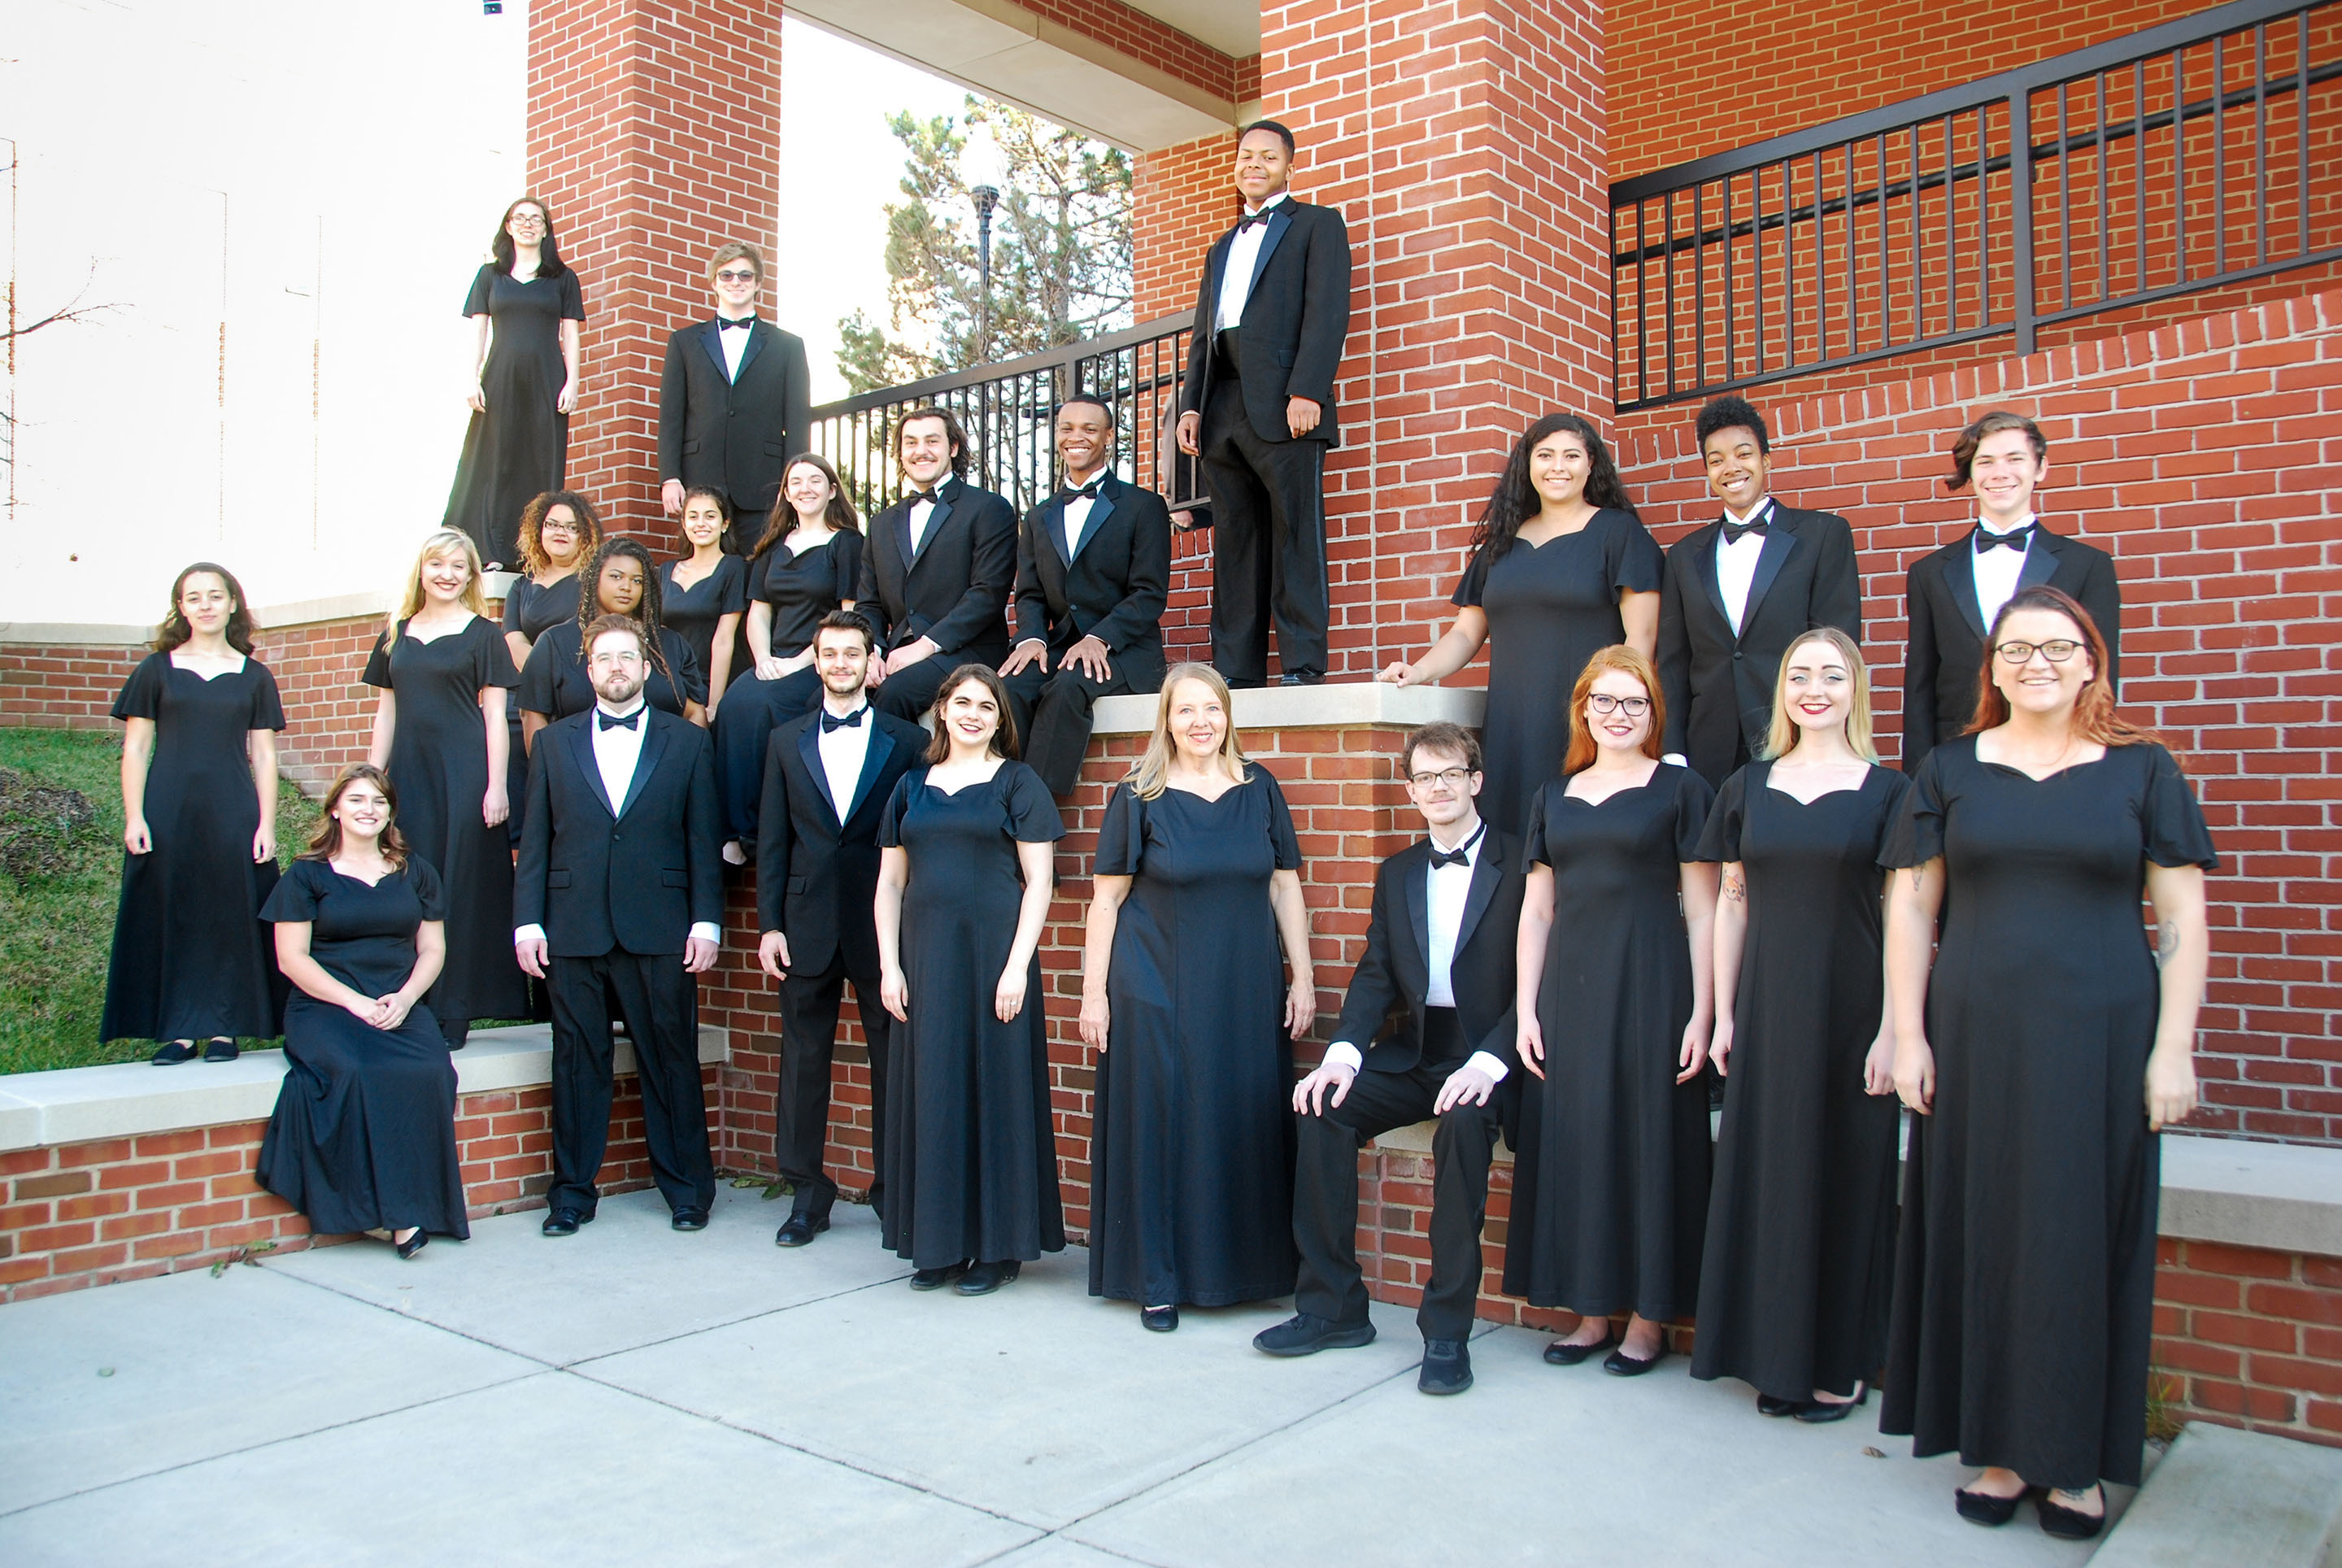 Chamber singers